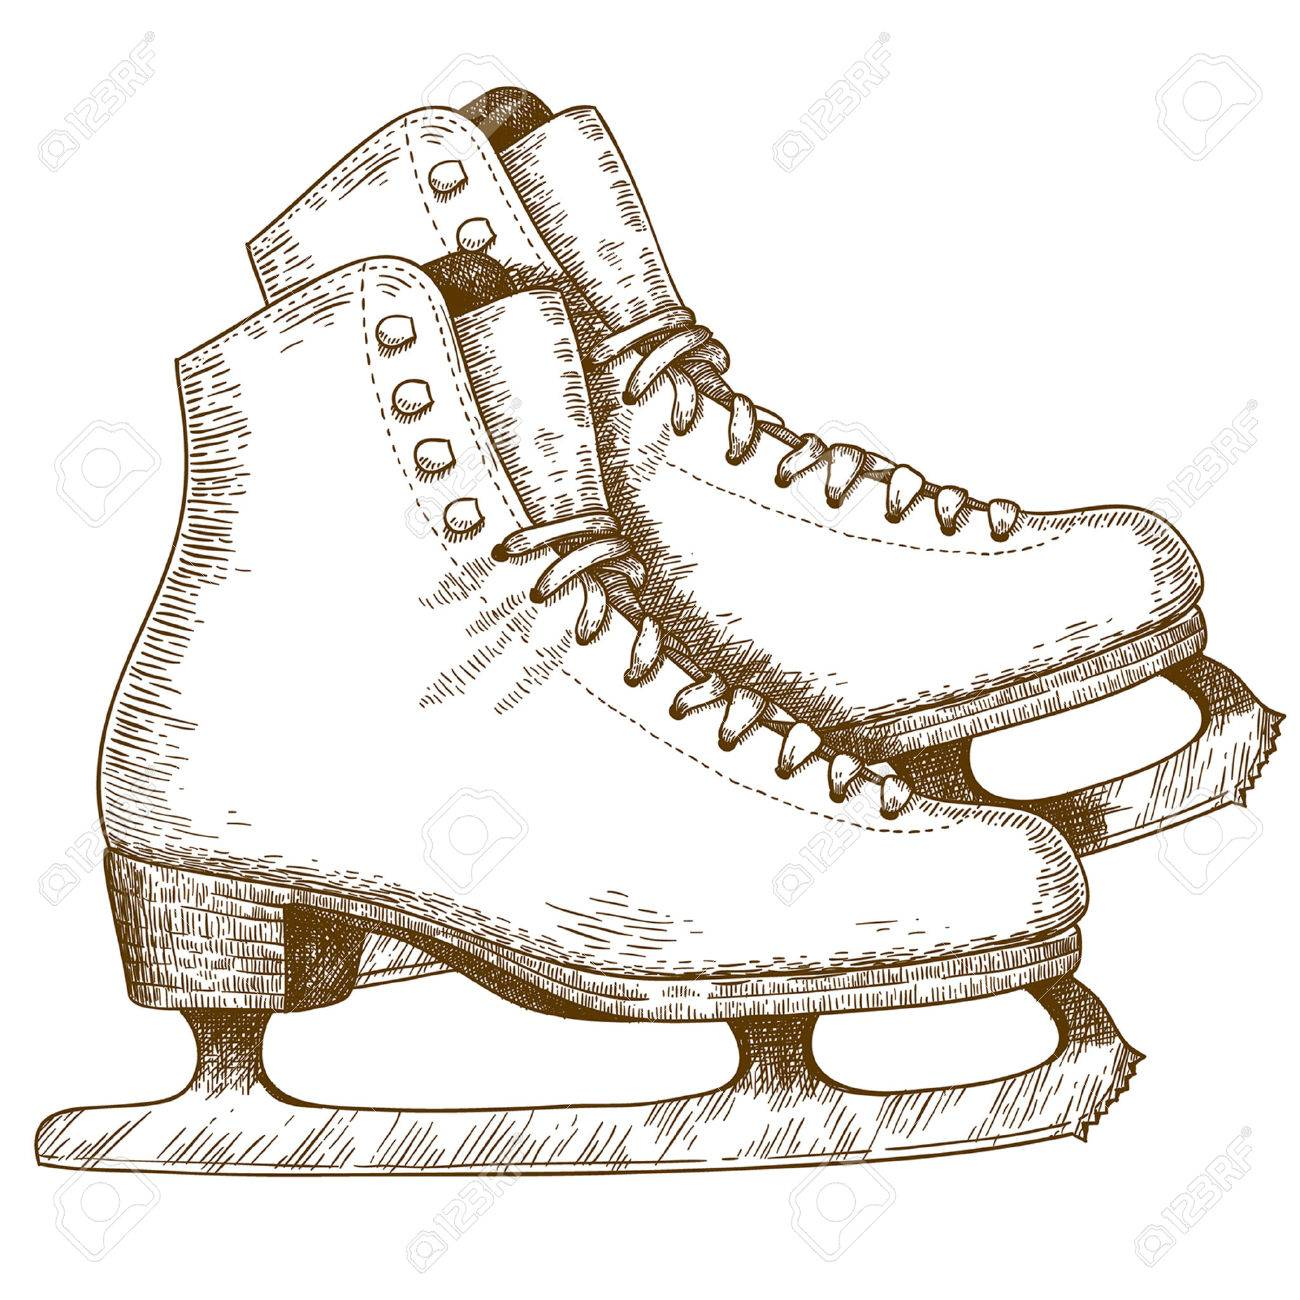 1300x1300 Figure Skates Stock Photos. Royalty Free Business Images